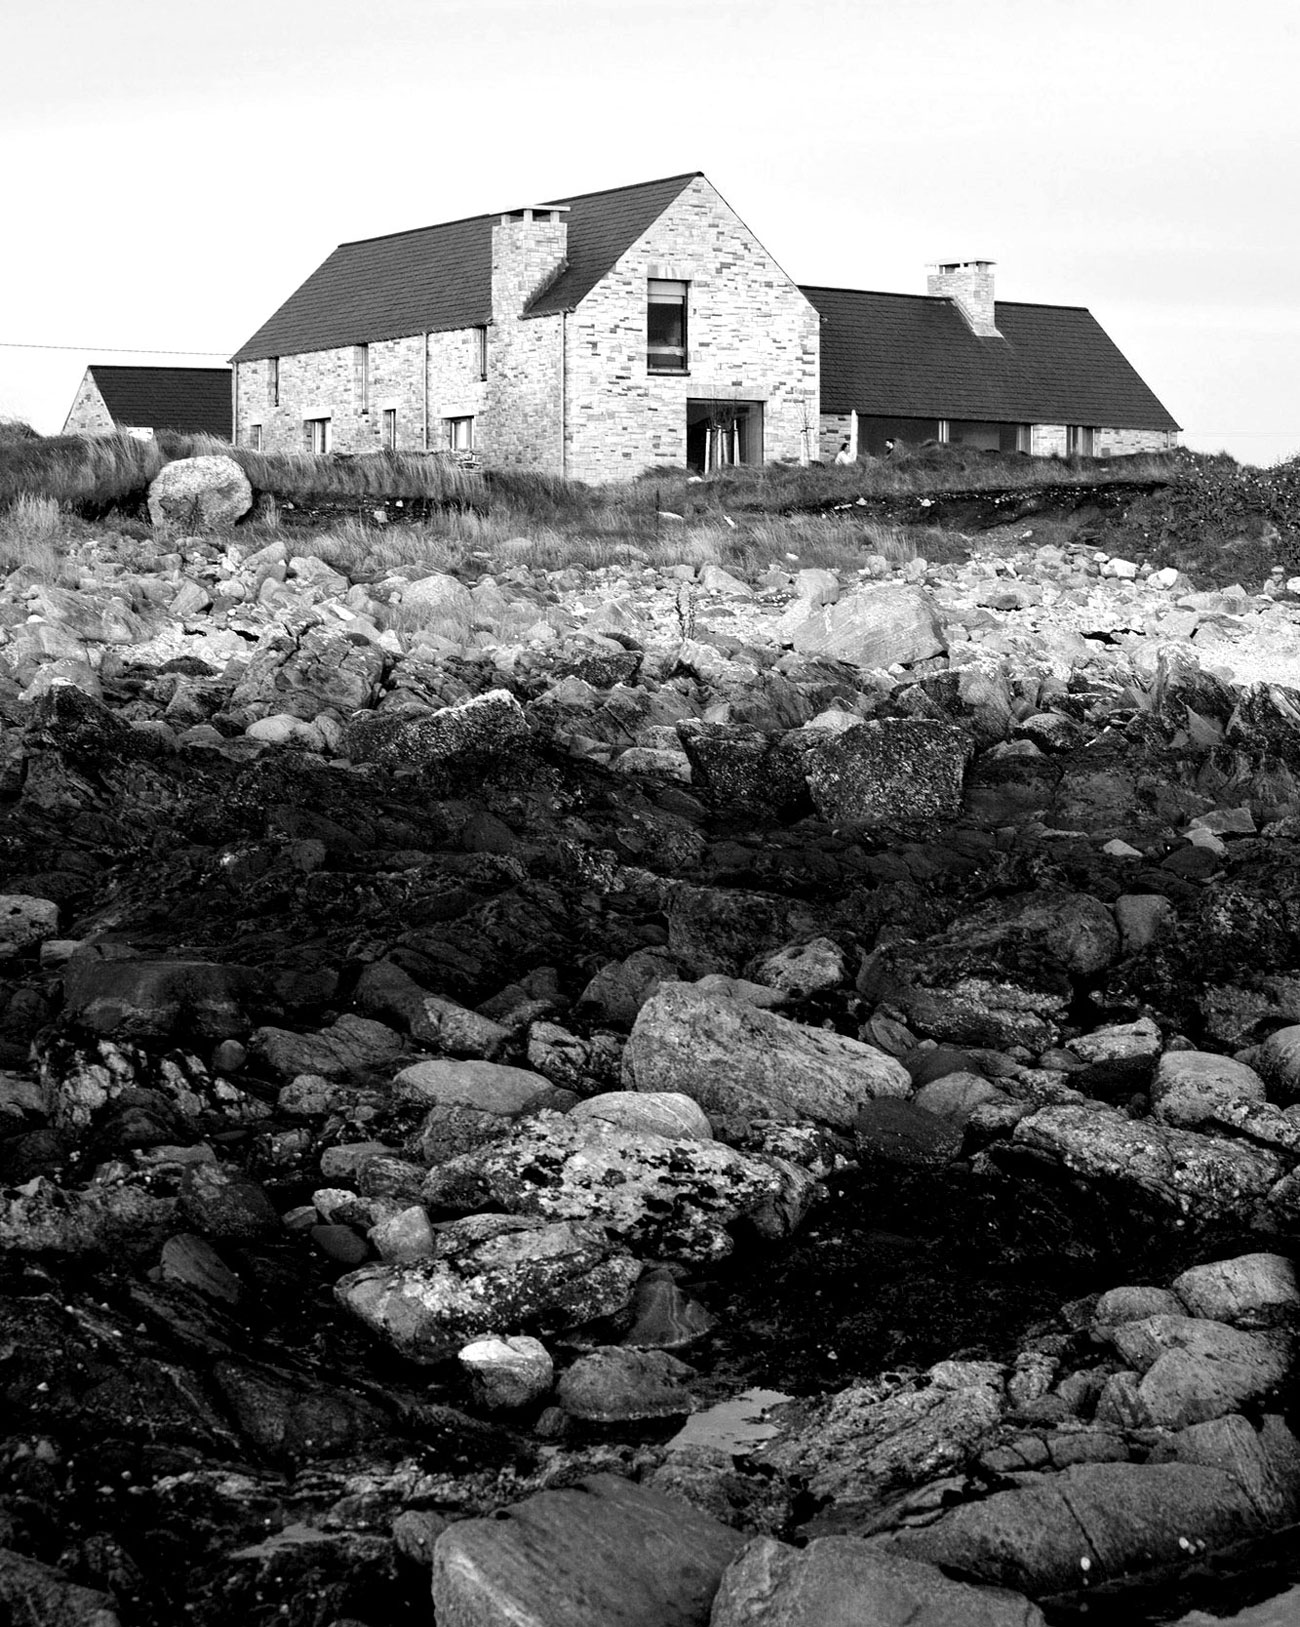 House in Blacksod Bay by Tierney Haines (2)